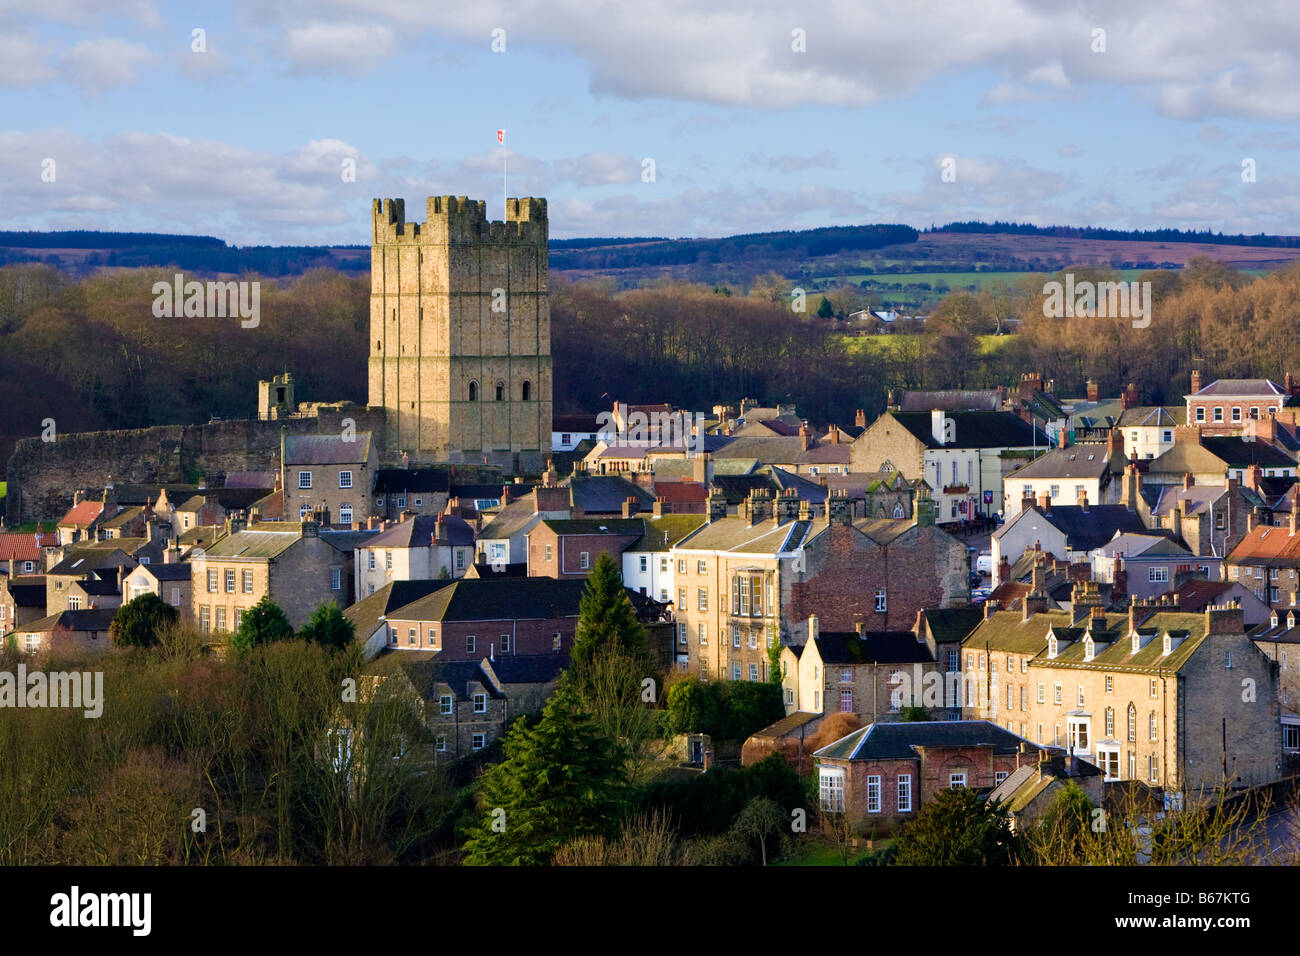 Yorkshire - Richmond castle and town, North Yorkshire, England, UK - Stock Image